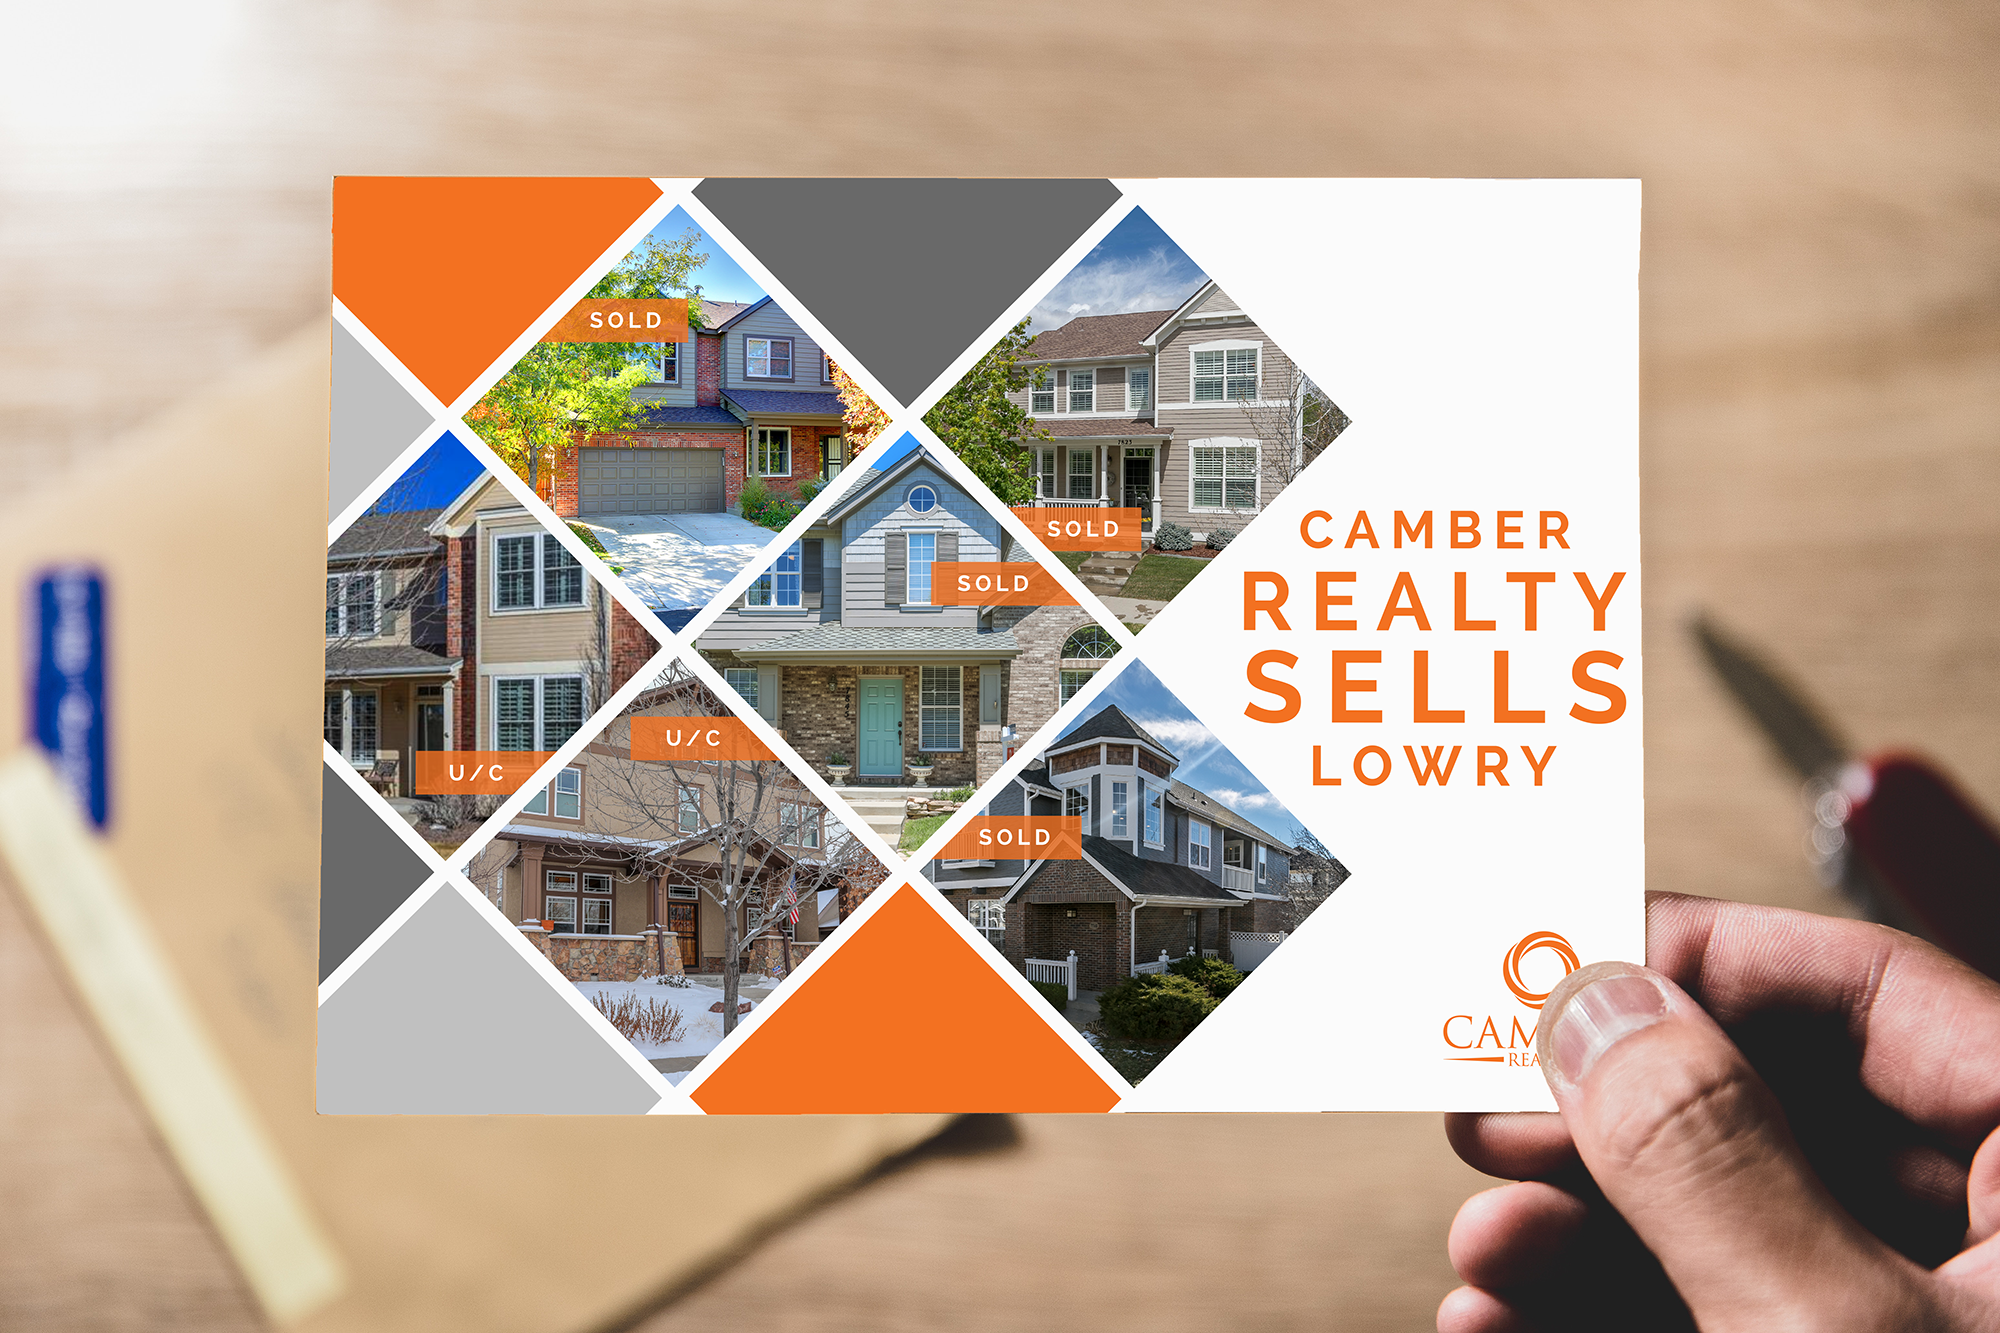 Camber Realty